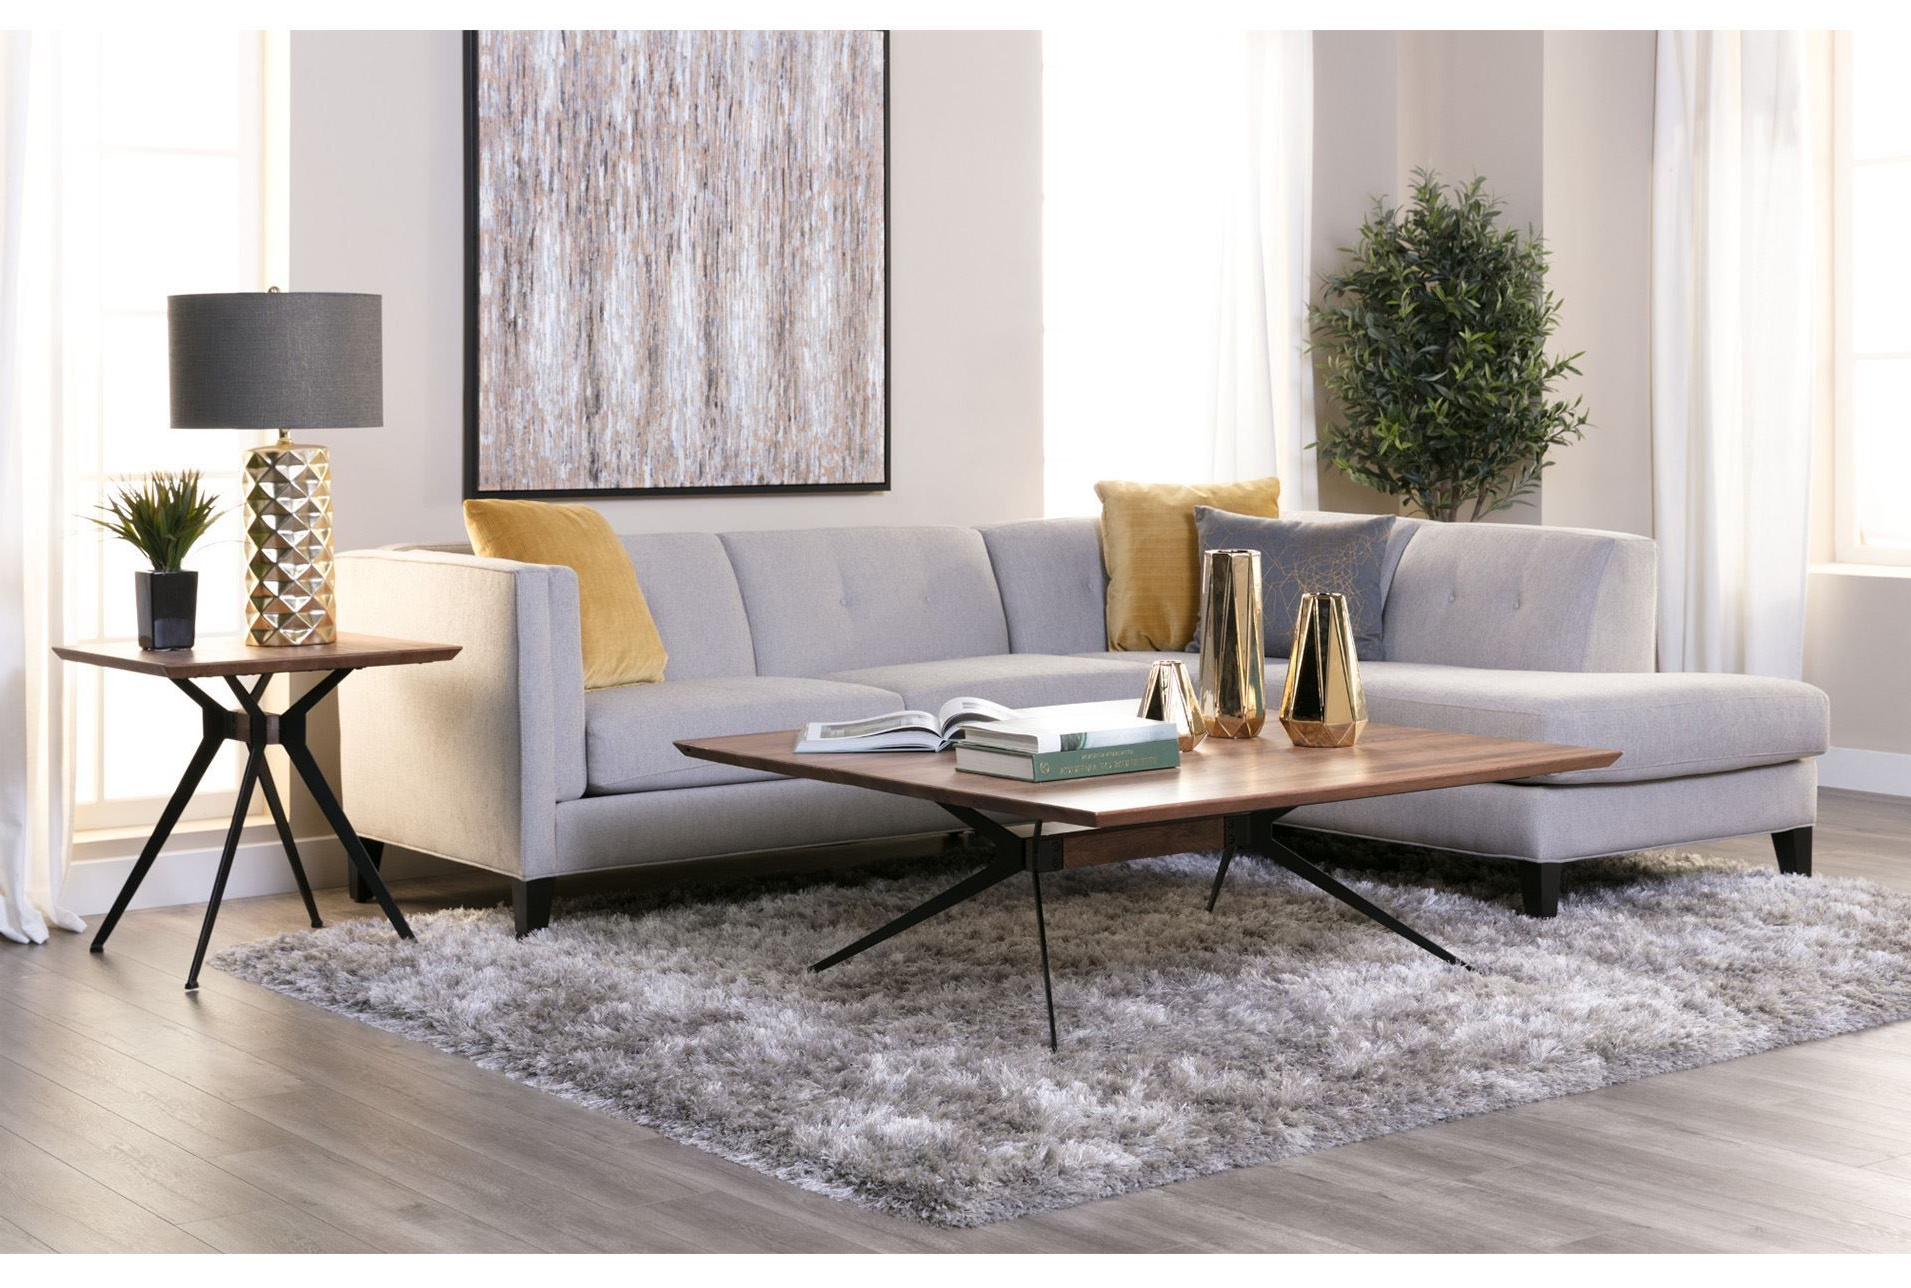 Home Decor/interior Regarding Preferred Avery 2 Piece Sectionals With Raf Armless Chaise (View 15 of 20)